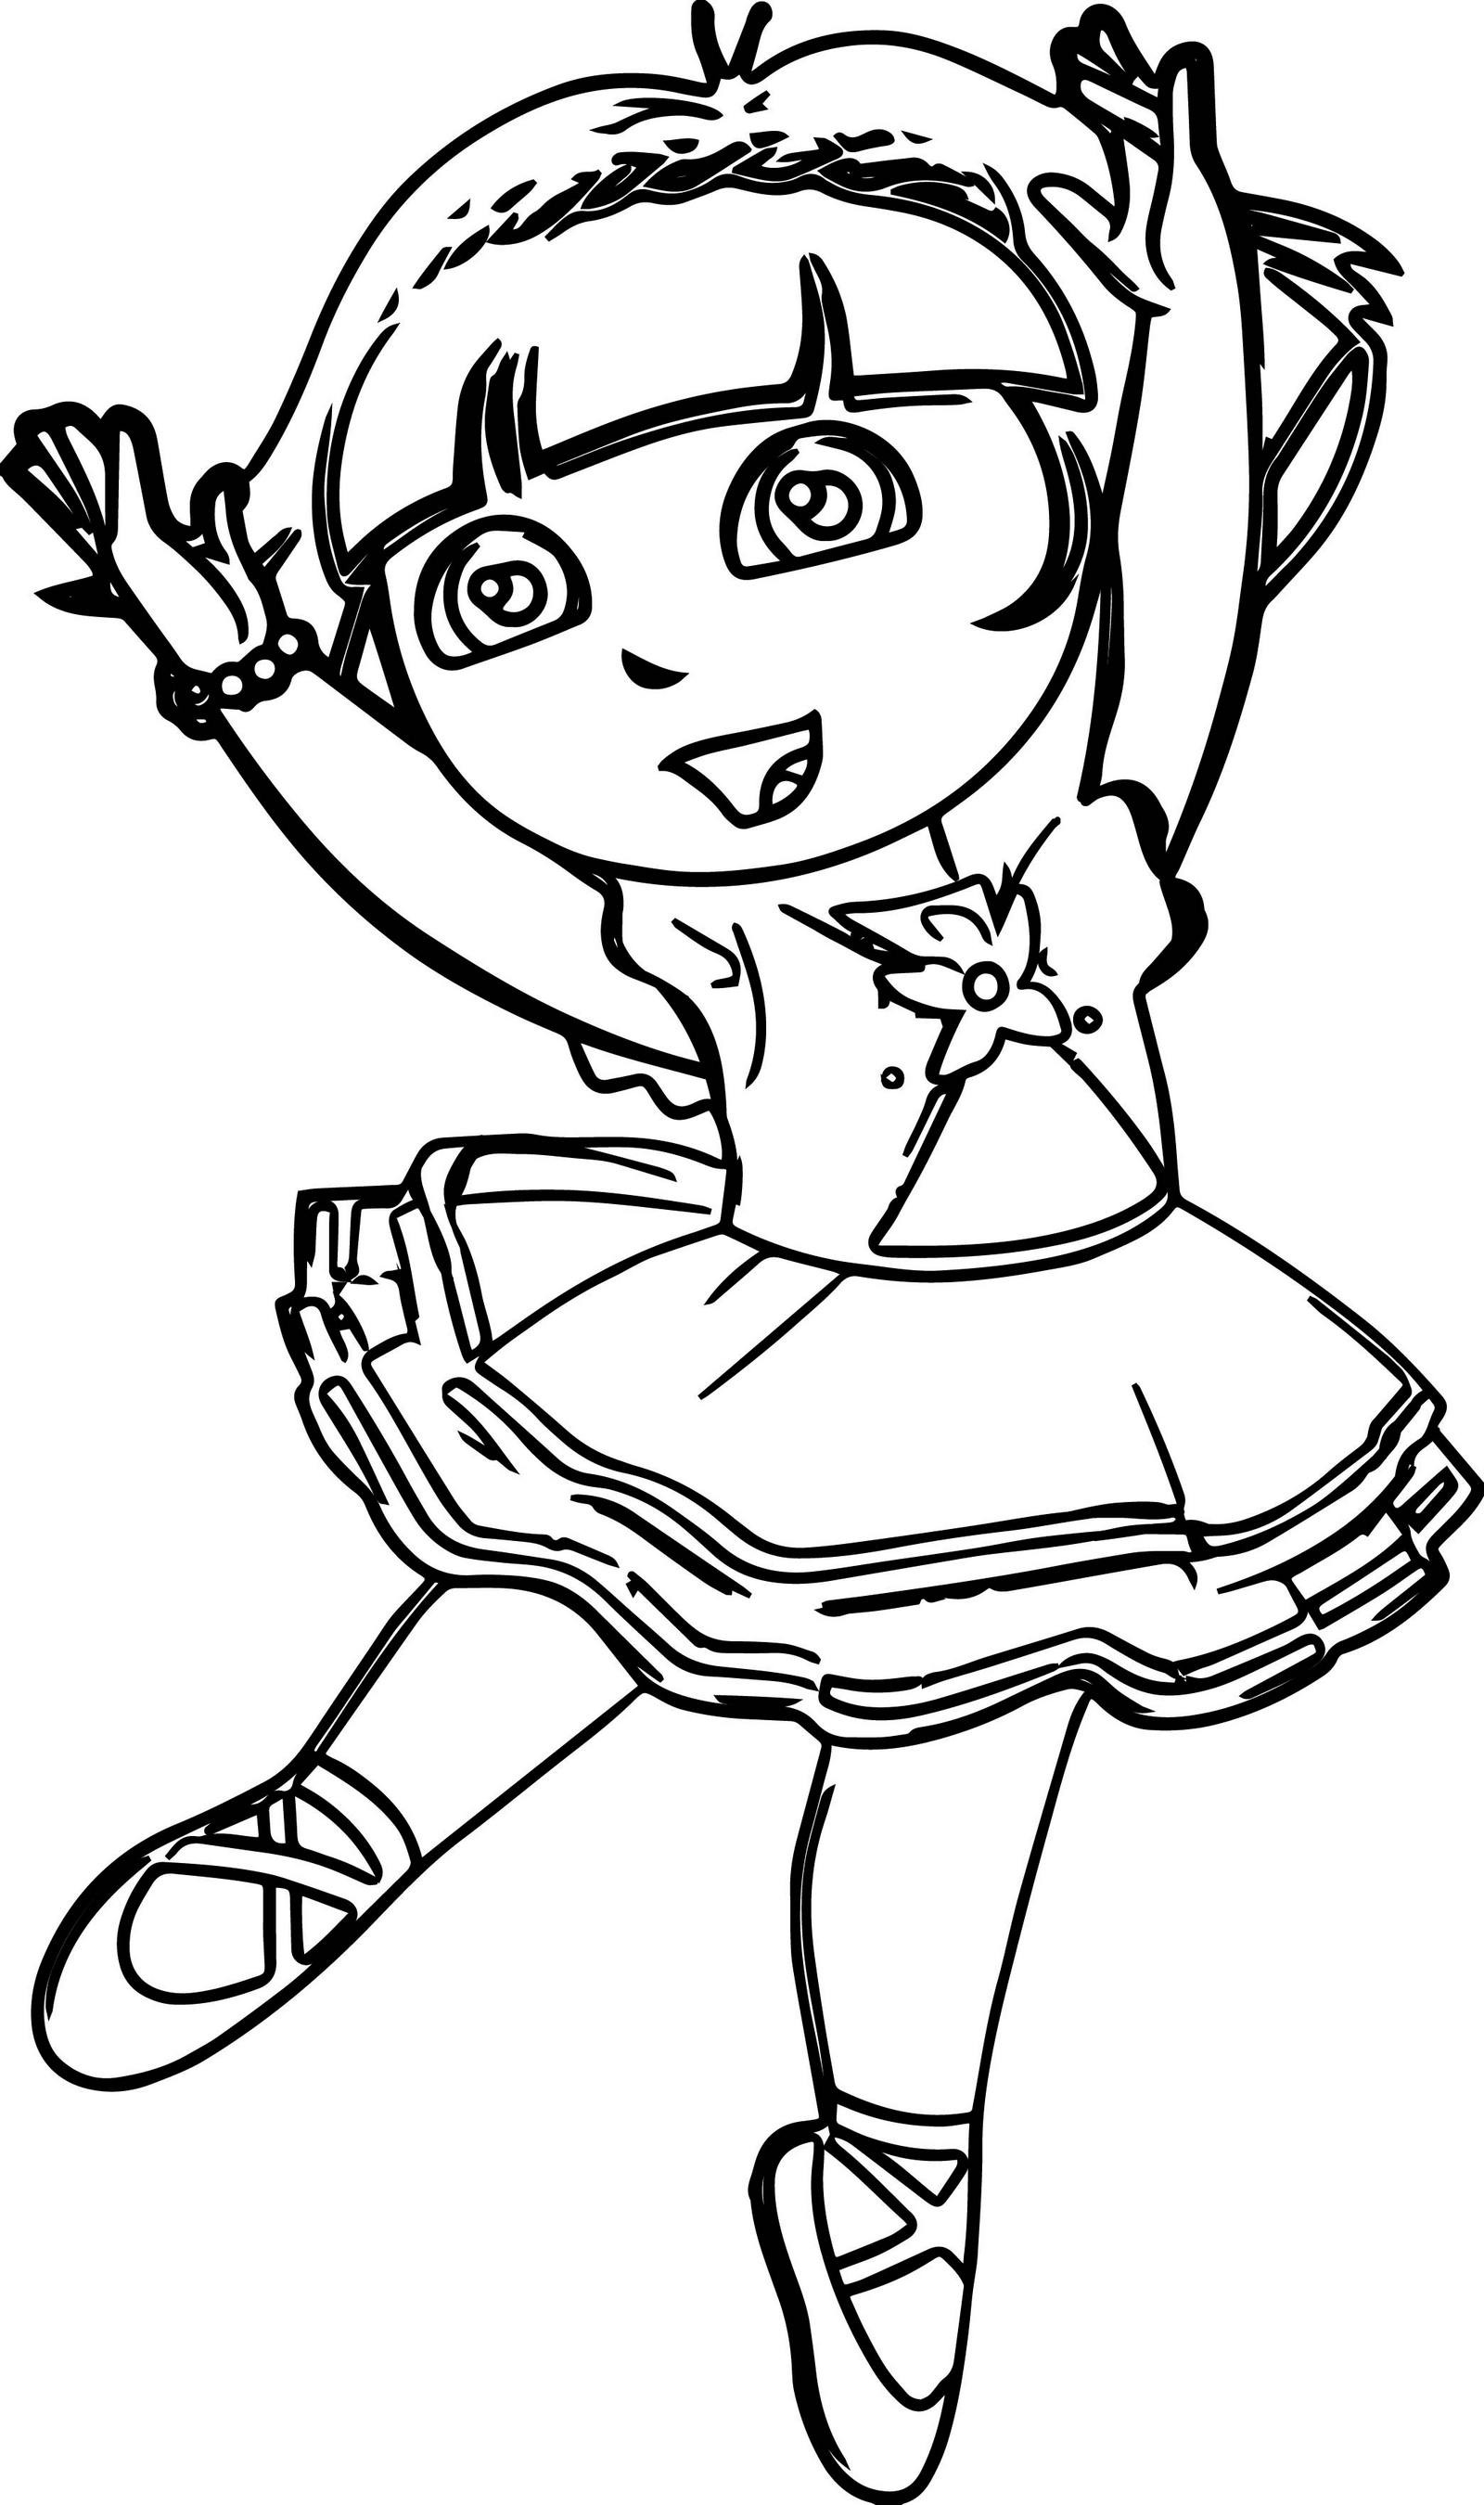 Best ideas about Ballerina Coloring Pages For Girls . Save or Pin Dora The Explorer Ballerina Coloring Page Now.